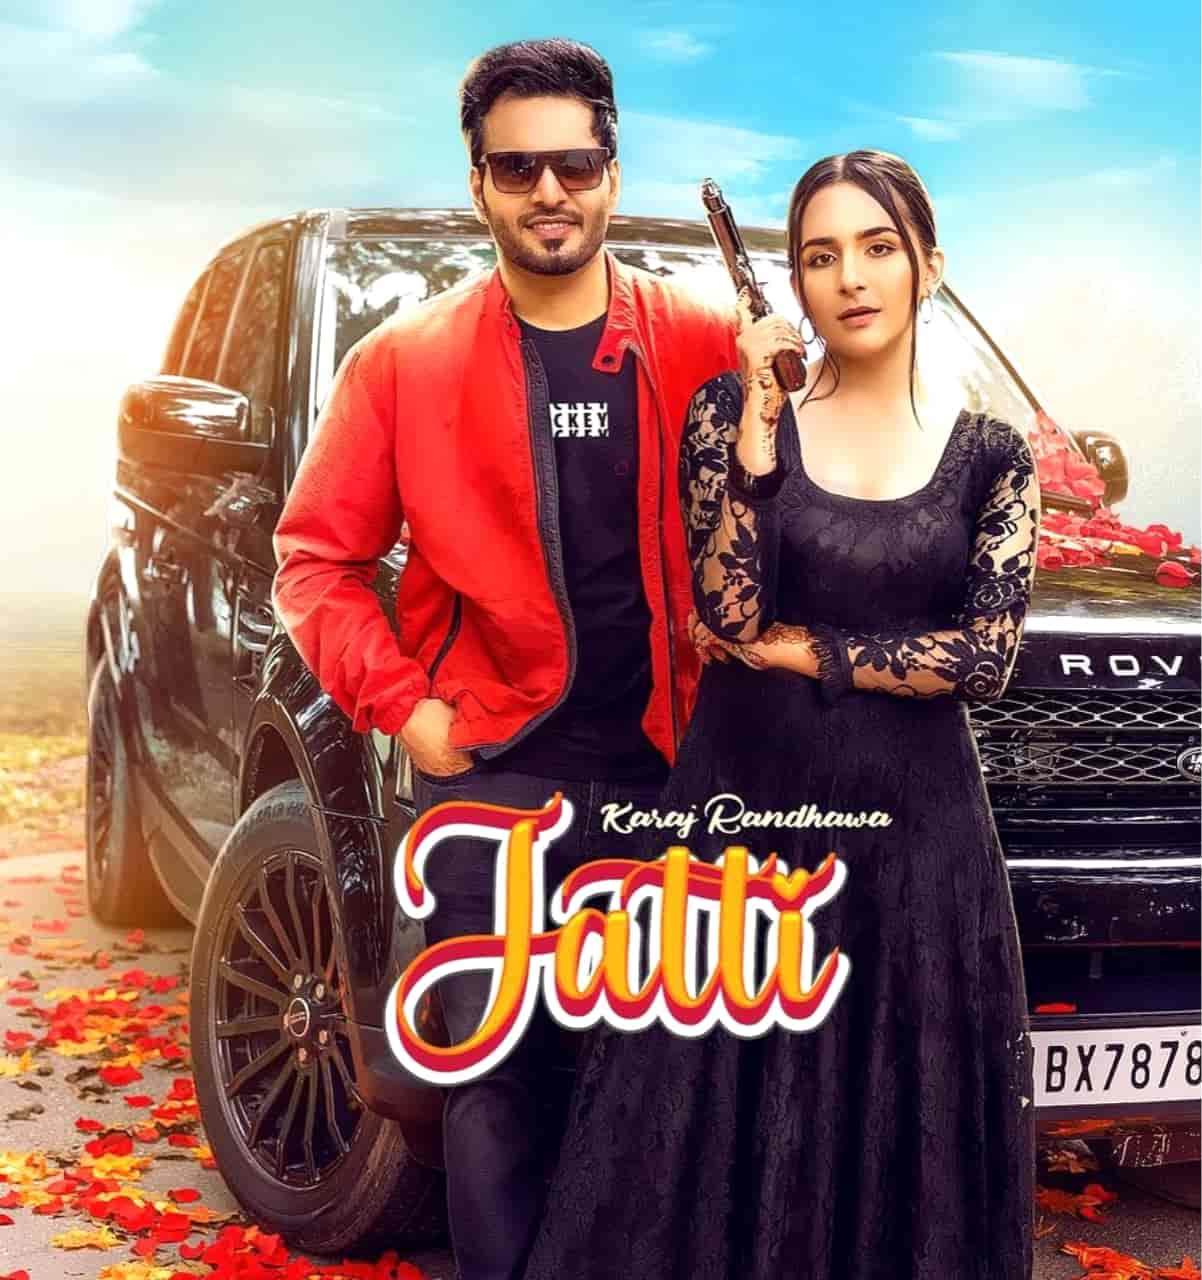 Jatti Punjabi Song Image Features Karaj Randhawa and Shrusty Maan